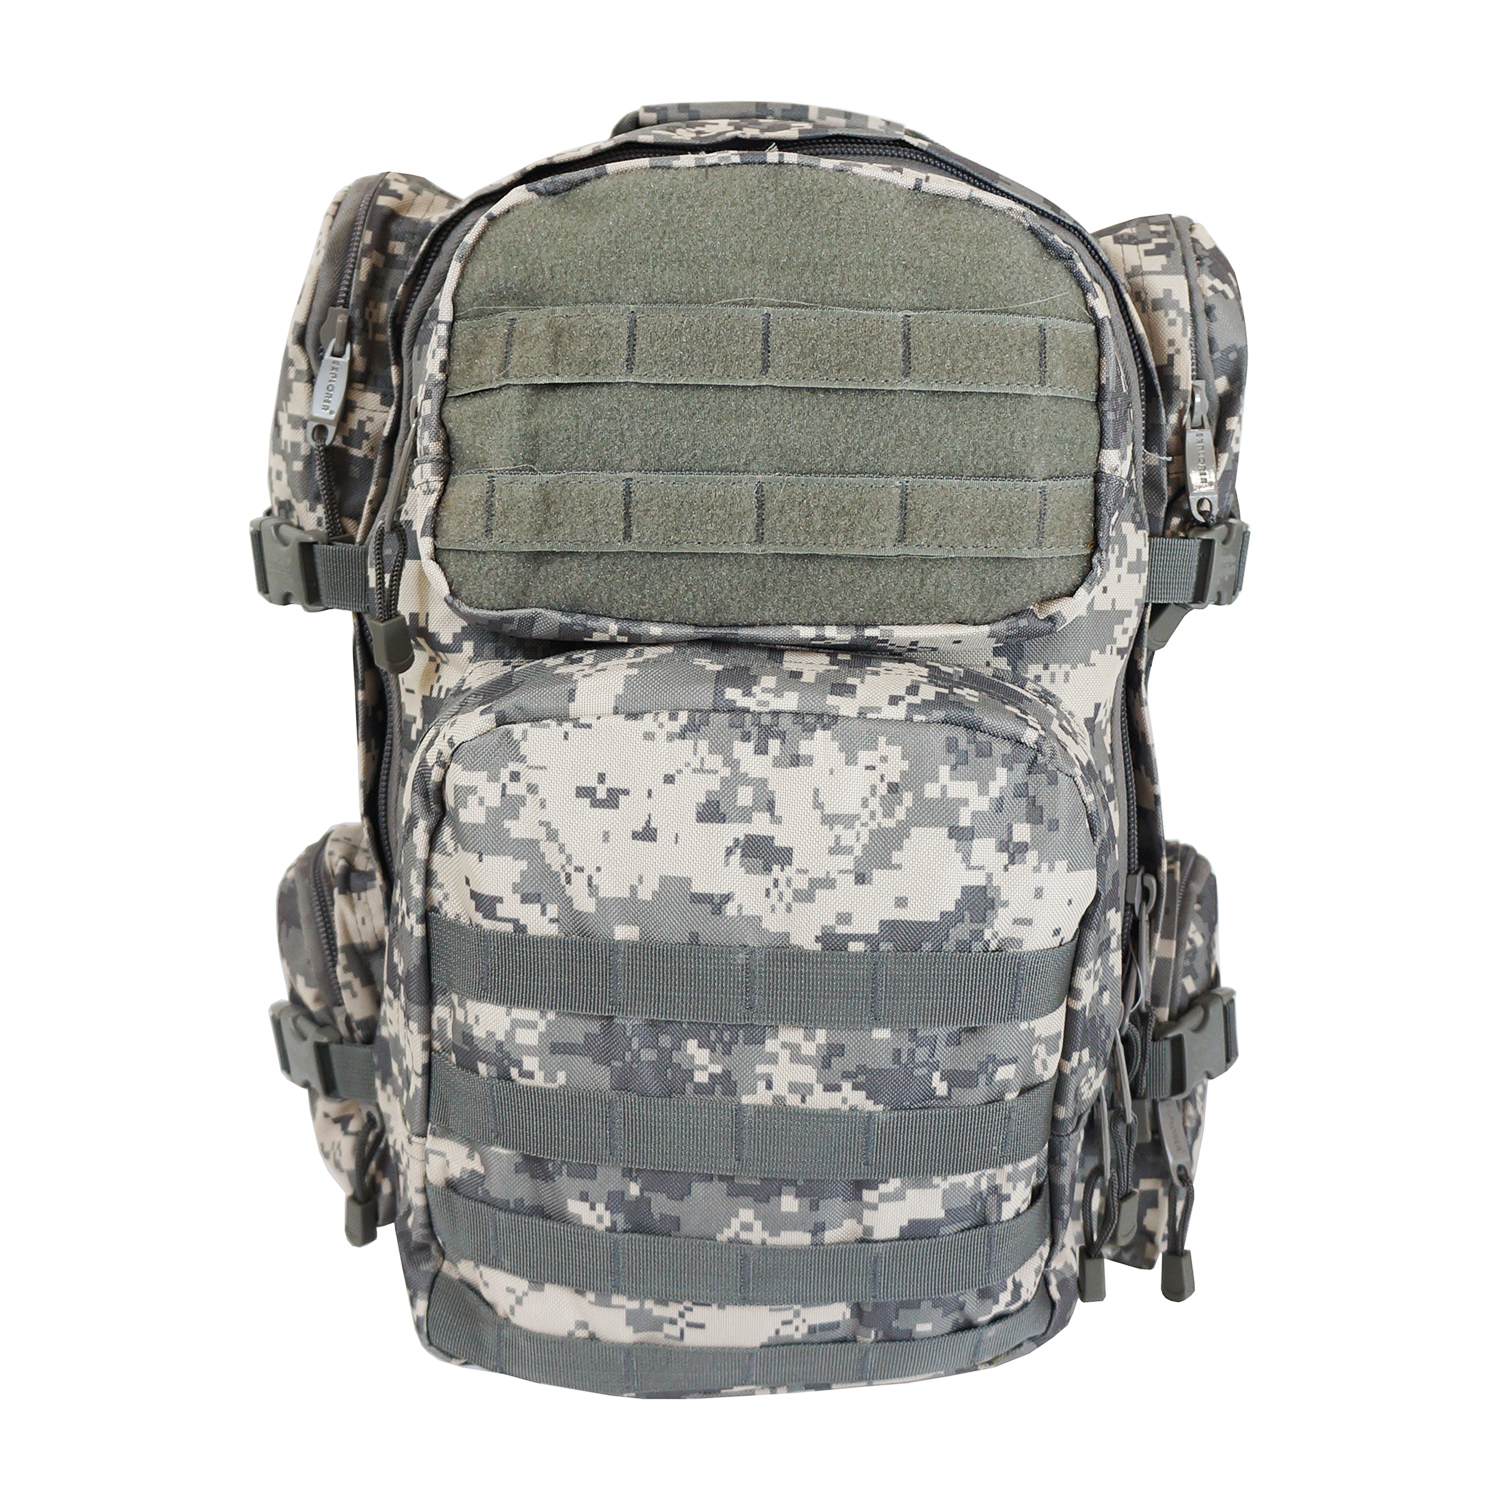 Every Day Carry Tactical Barrage Bag Day Pack Backpack with Molle Webbing - ACU